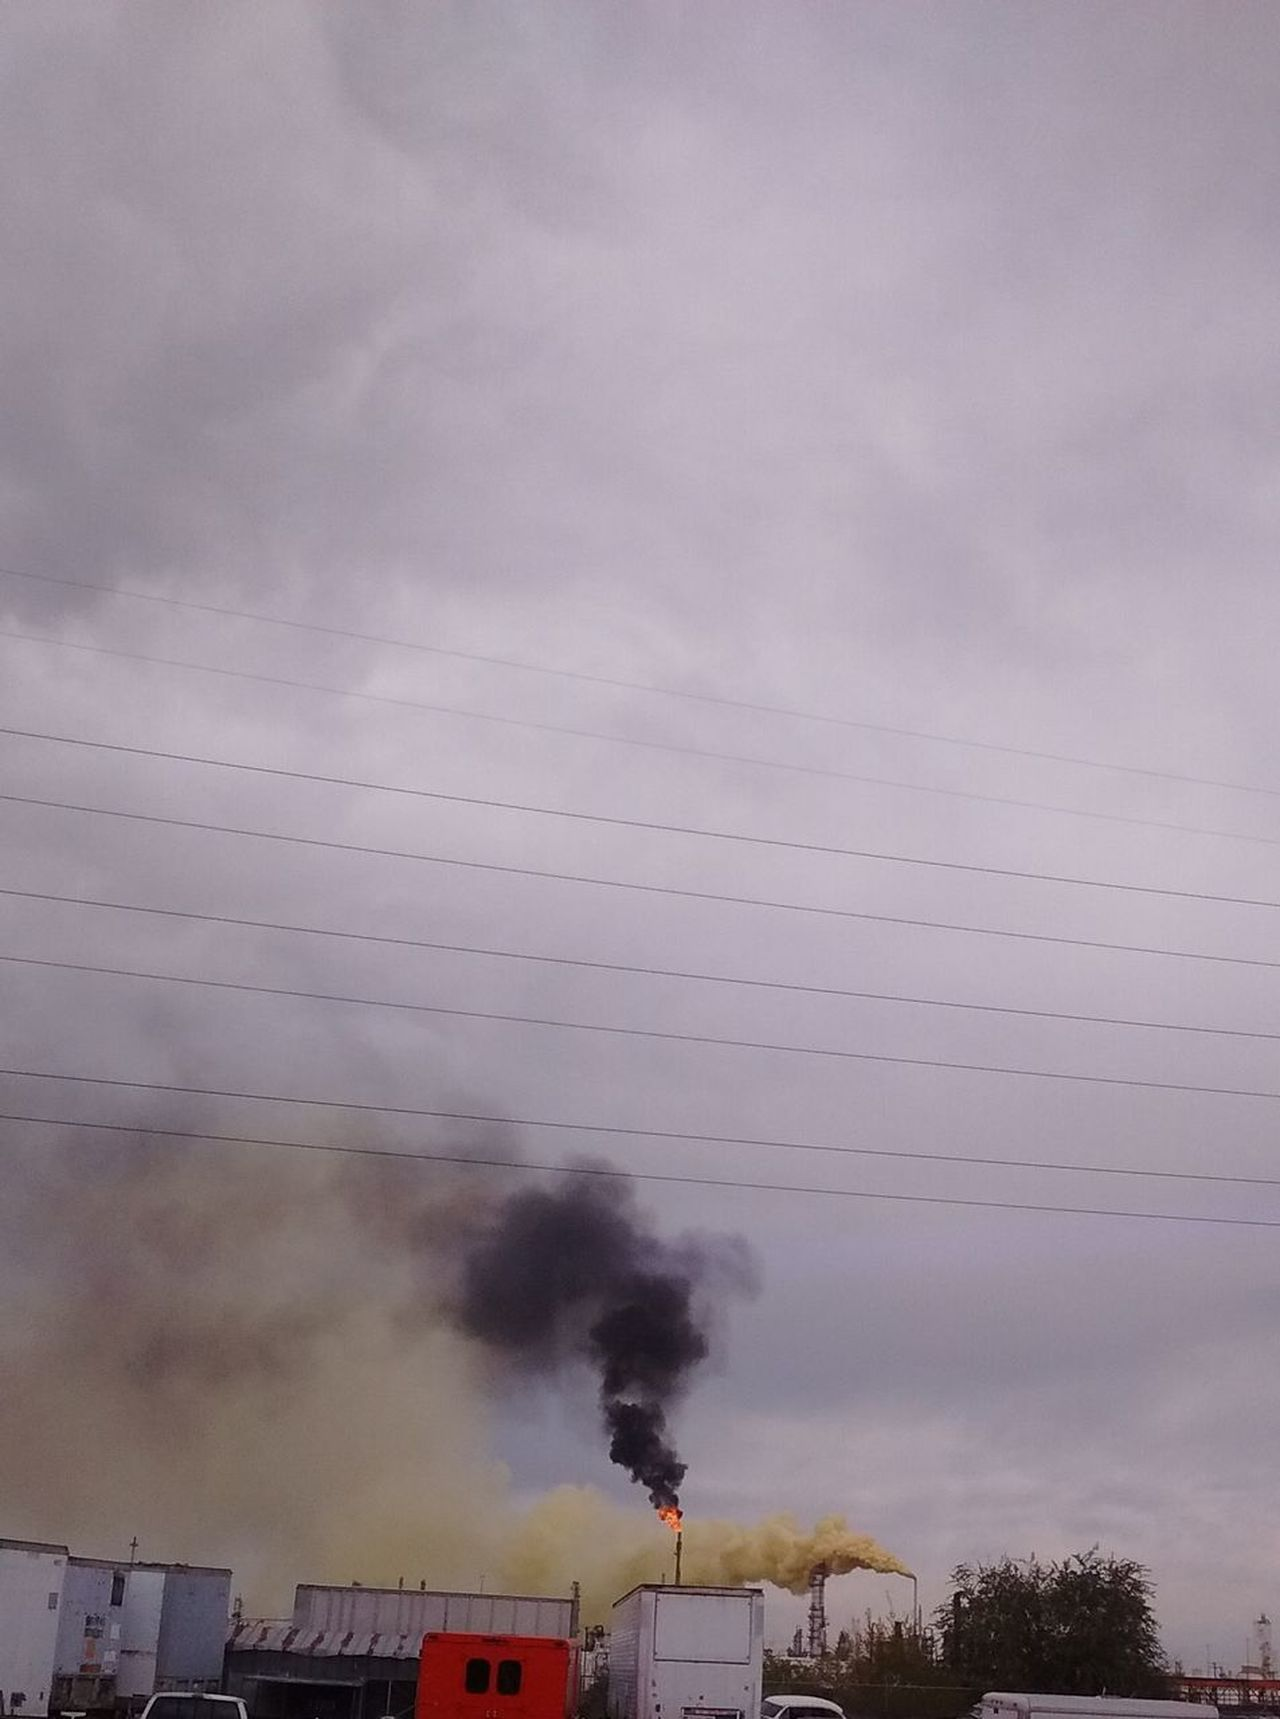 """2016 Suncore Refinery """"Yellow Plume"""" Commerce City, Colorado ENVIRONMENTAL HAZARD as it was happening. 911 Chimney Cloud - Sky Danger Day Denver Colorado  Emergency Emitting Epa Factory Fumes Hazmat Team Firefighters Help Industry Nature Sky Smoke - Physical Structure Smoke Stack Vapor Trail"""